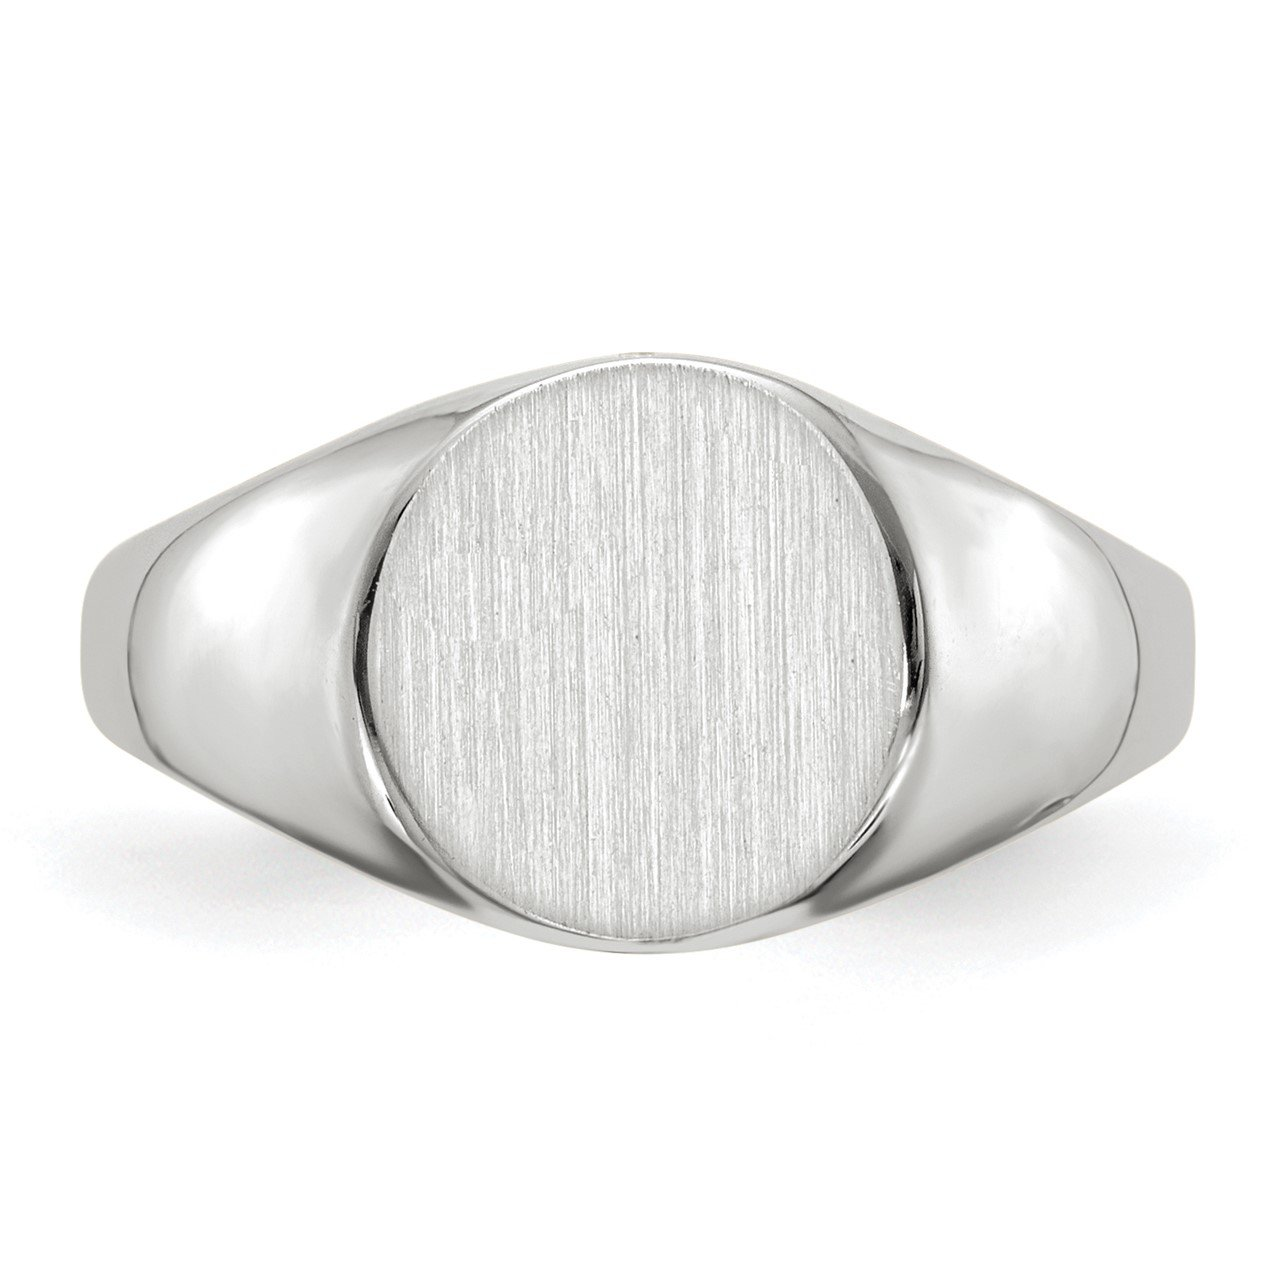 14kw 9.0x9.5mm Closed Back Signet Ring-3